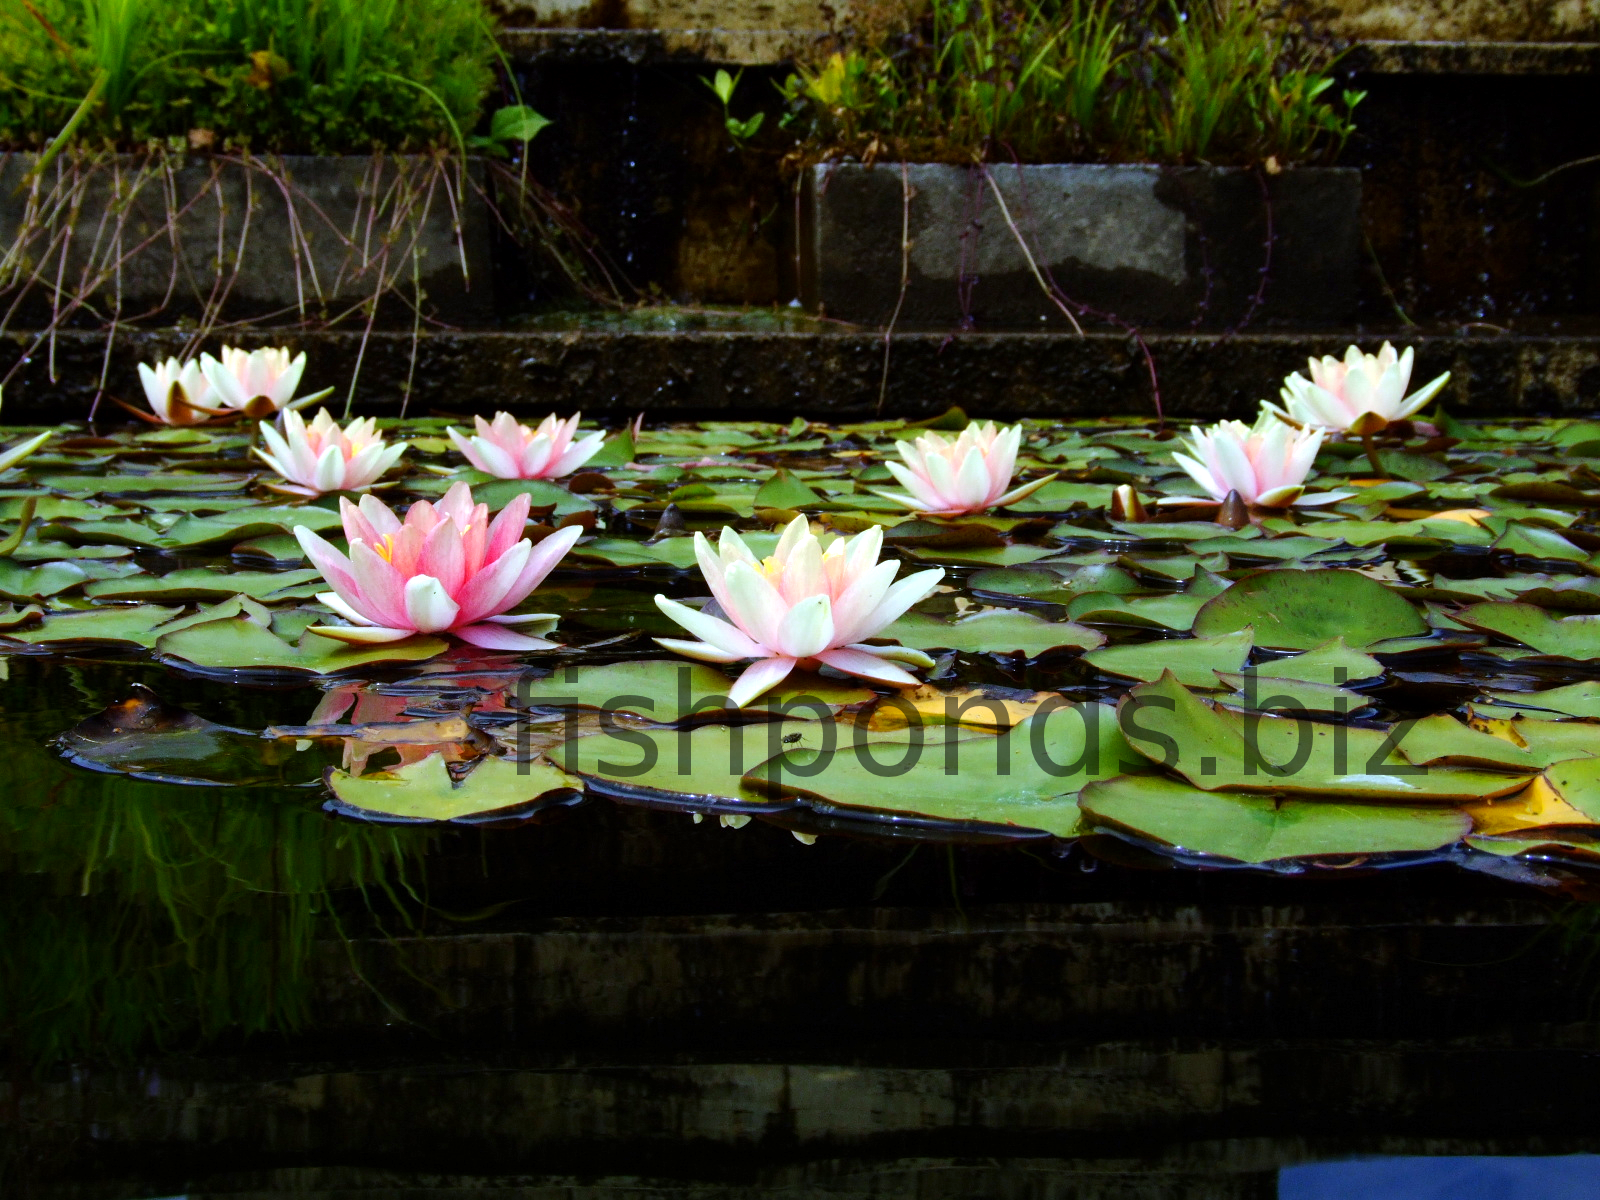 How to build a fish pond for How to build a koi pond step by step